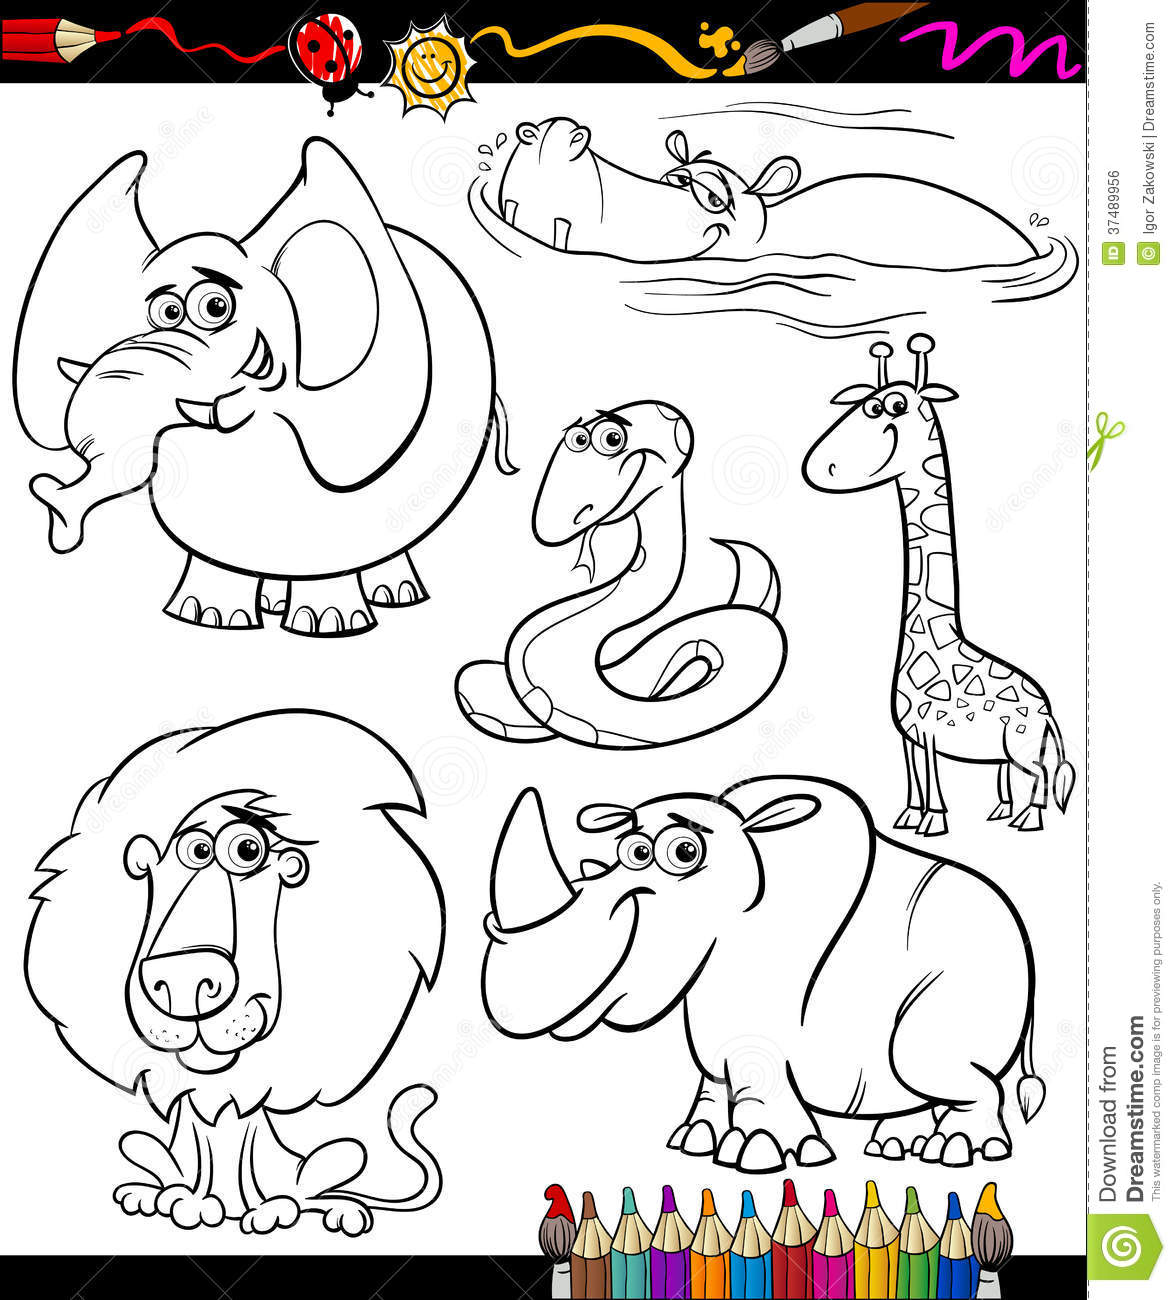 Animals Black Book Cartoon Children Coloring Illustration Page Set White Wild